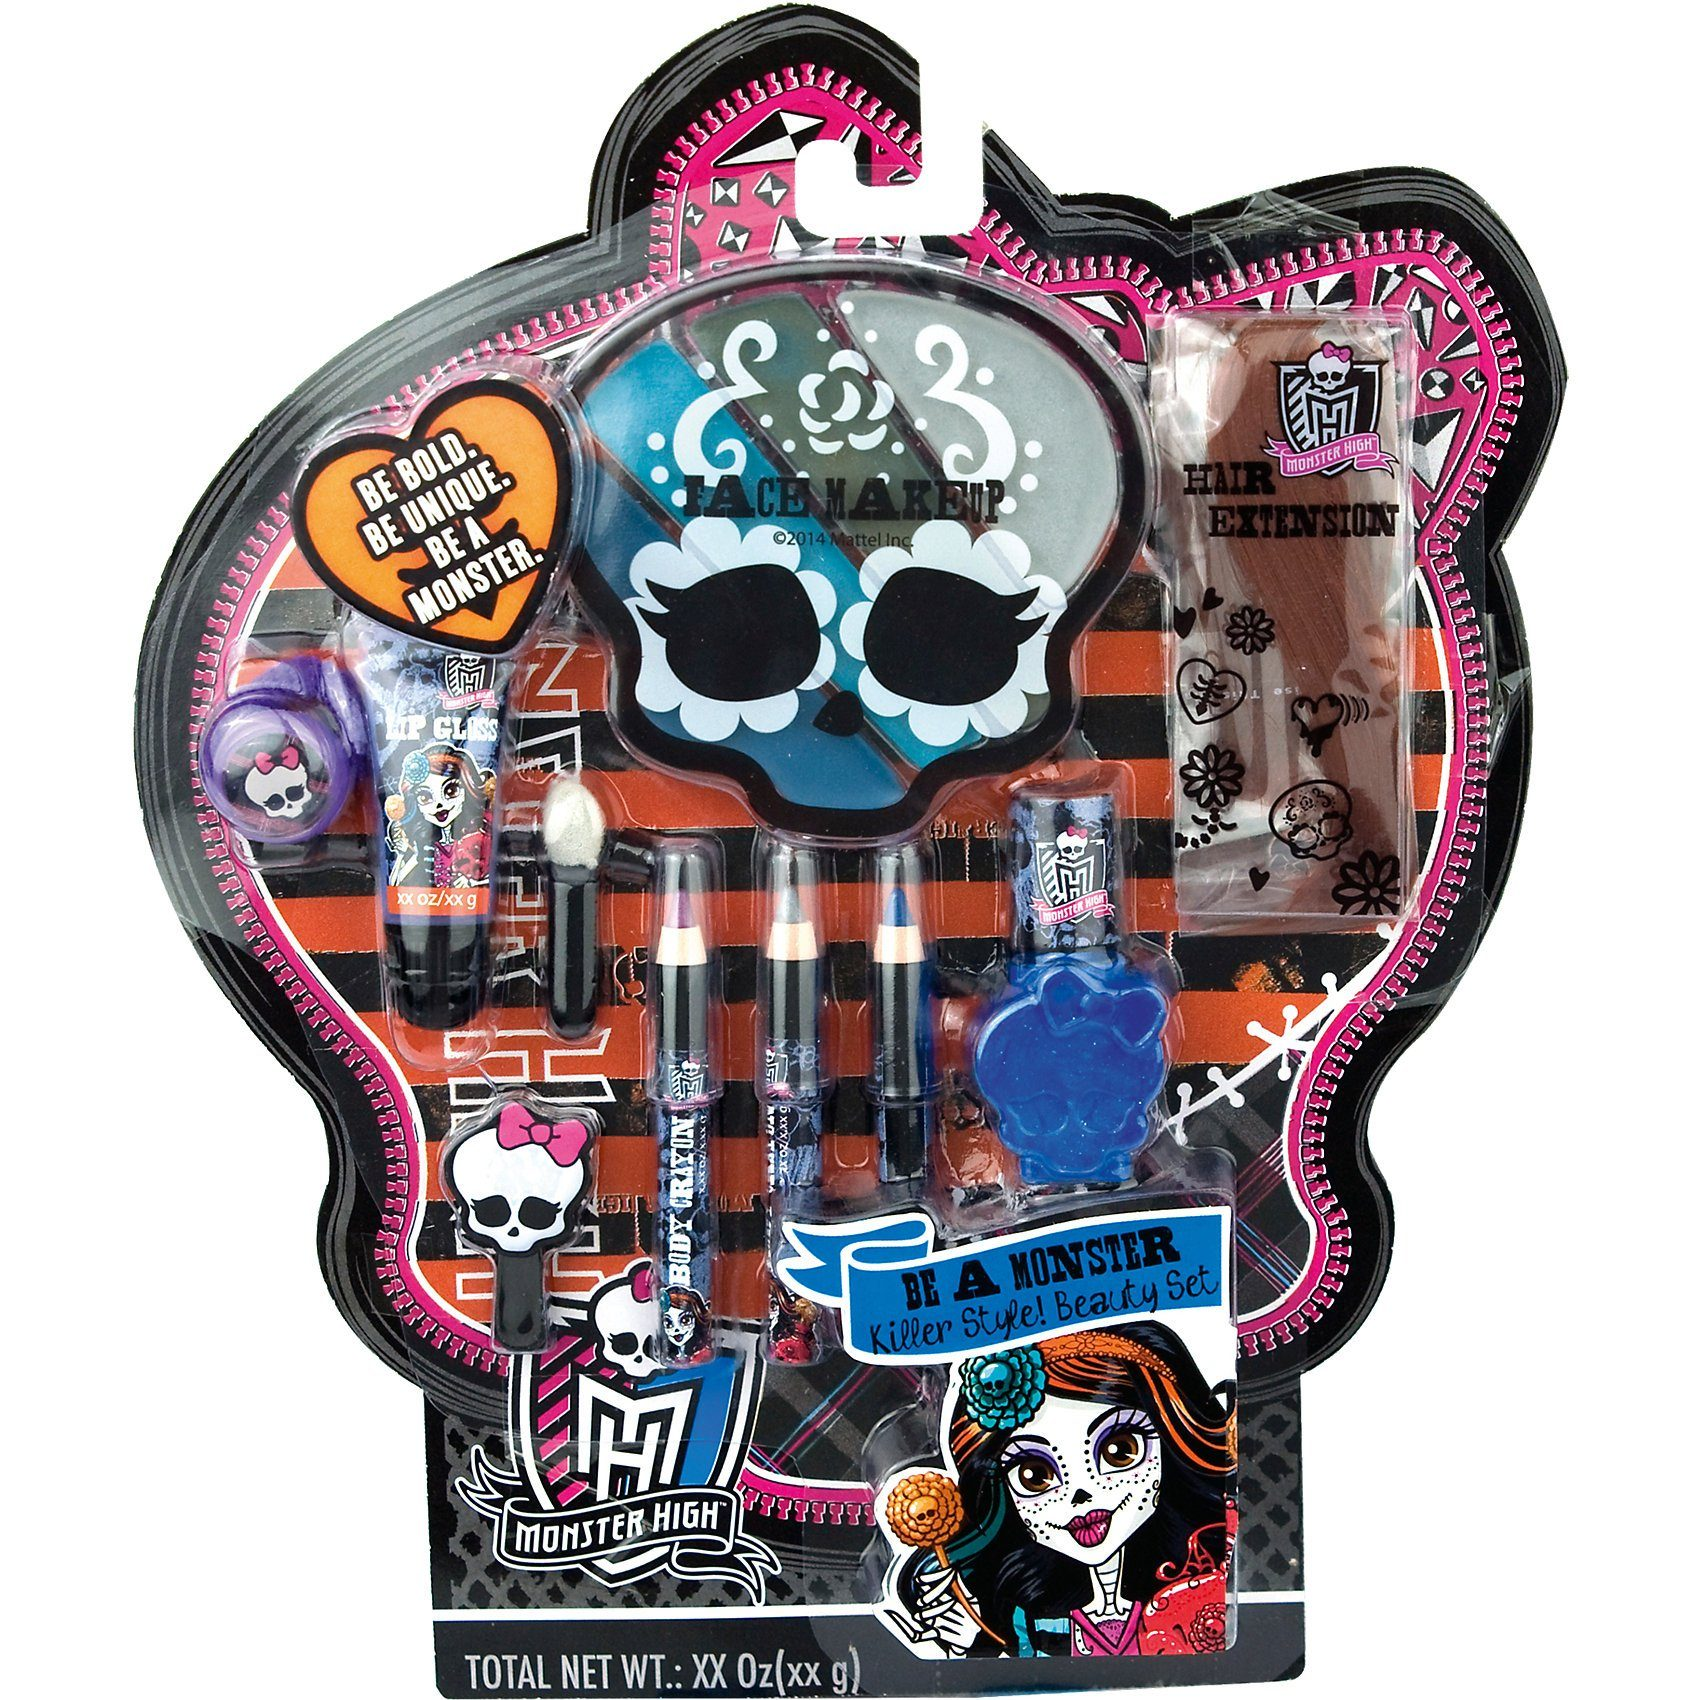 Empeak Monster High - Make up Set Skelita Calveras